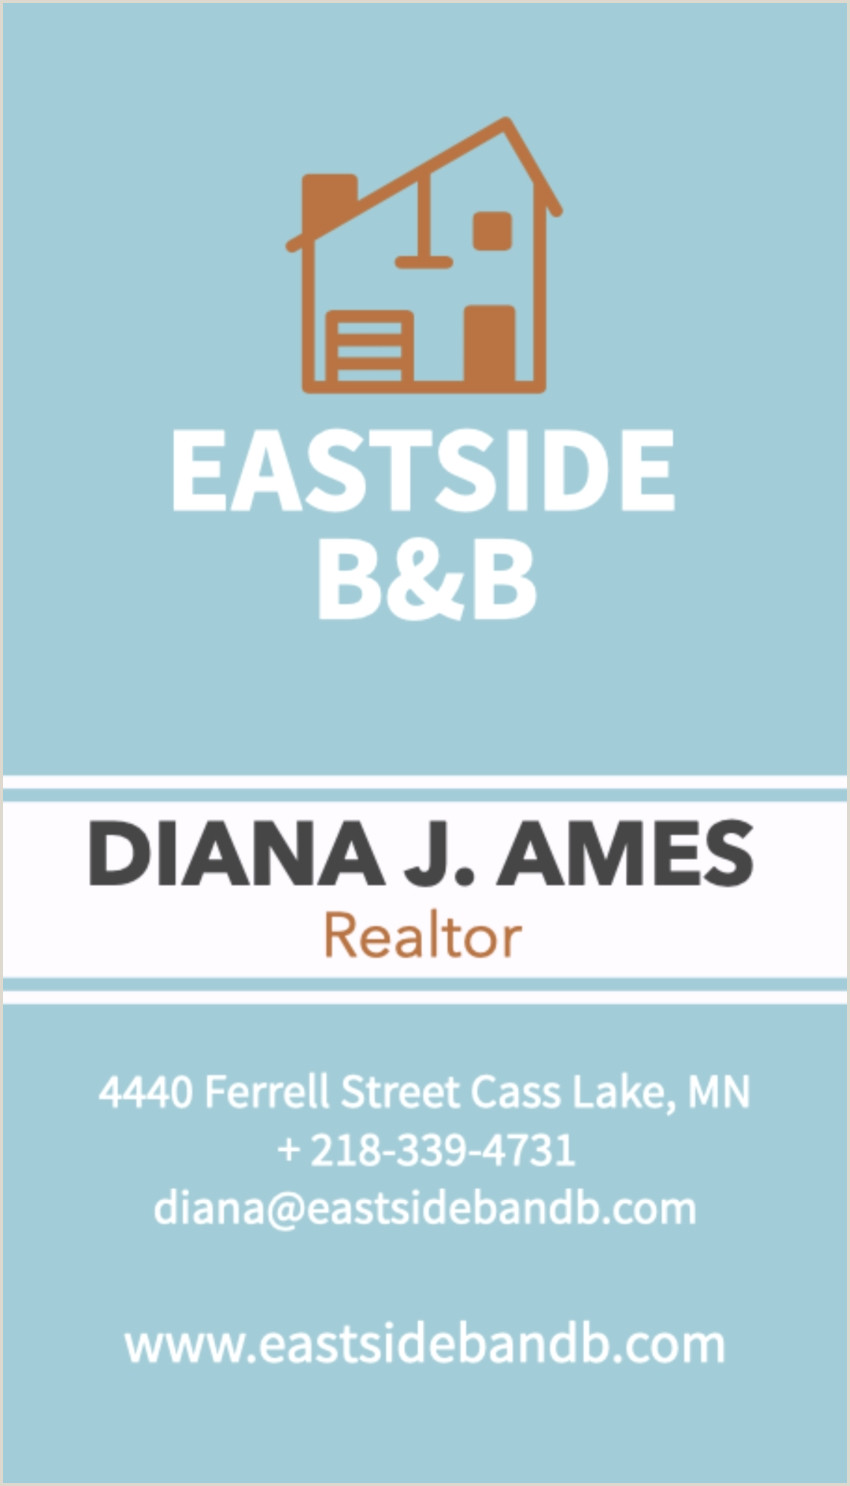 Unique Business Cards Real Estate 25 Best Real Estate Business Card Designs Unique Ideas For